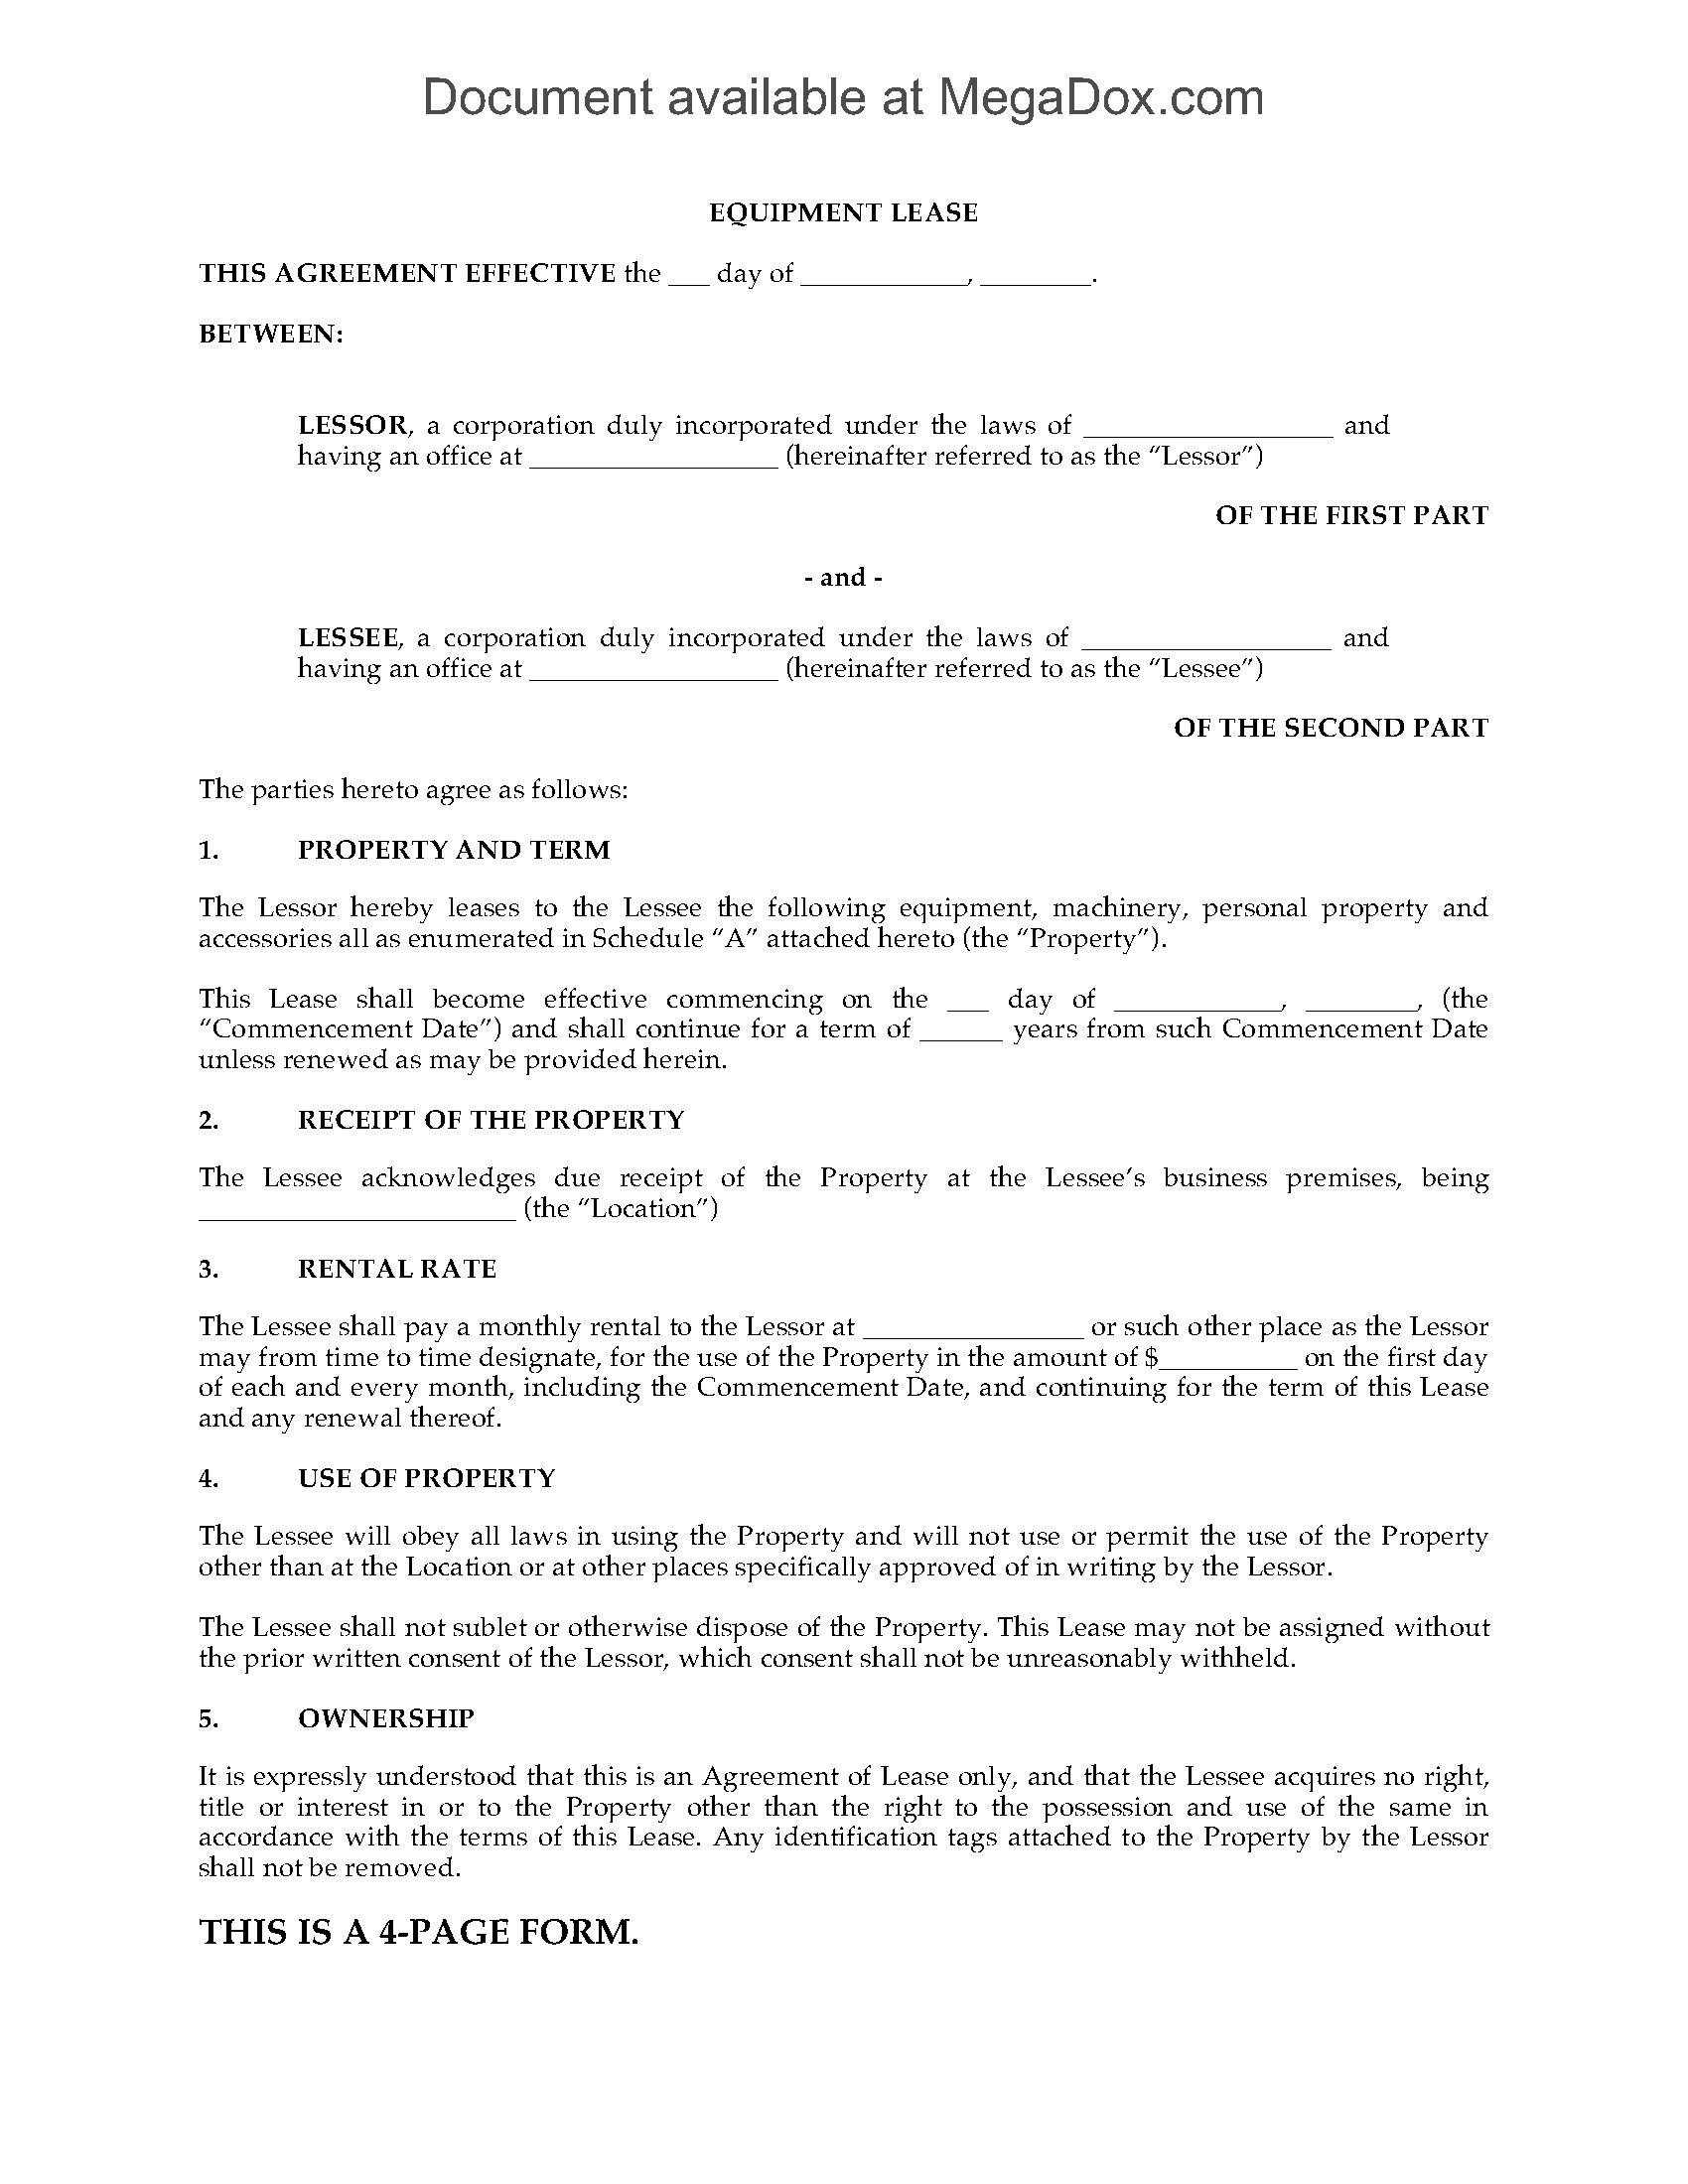 Equipment Lease Agreement With Purchase Option  Legal Forms And With Regard To Screenplay Option Agreement Template